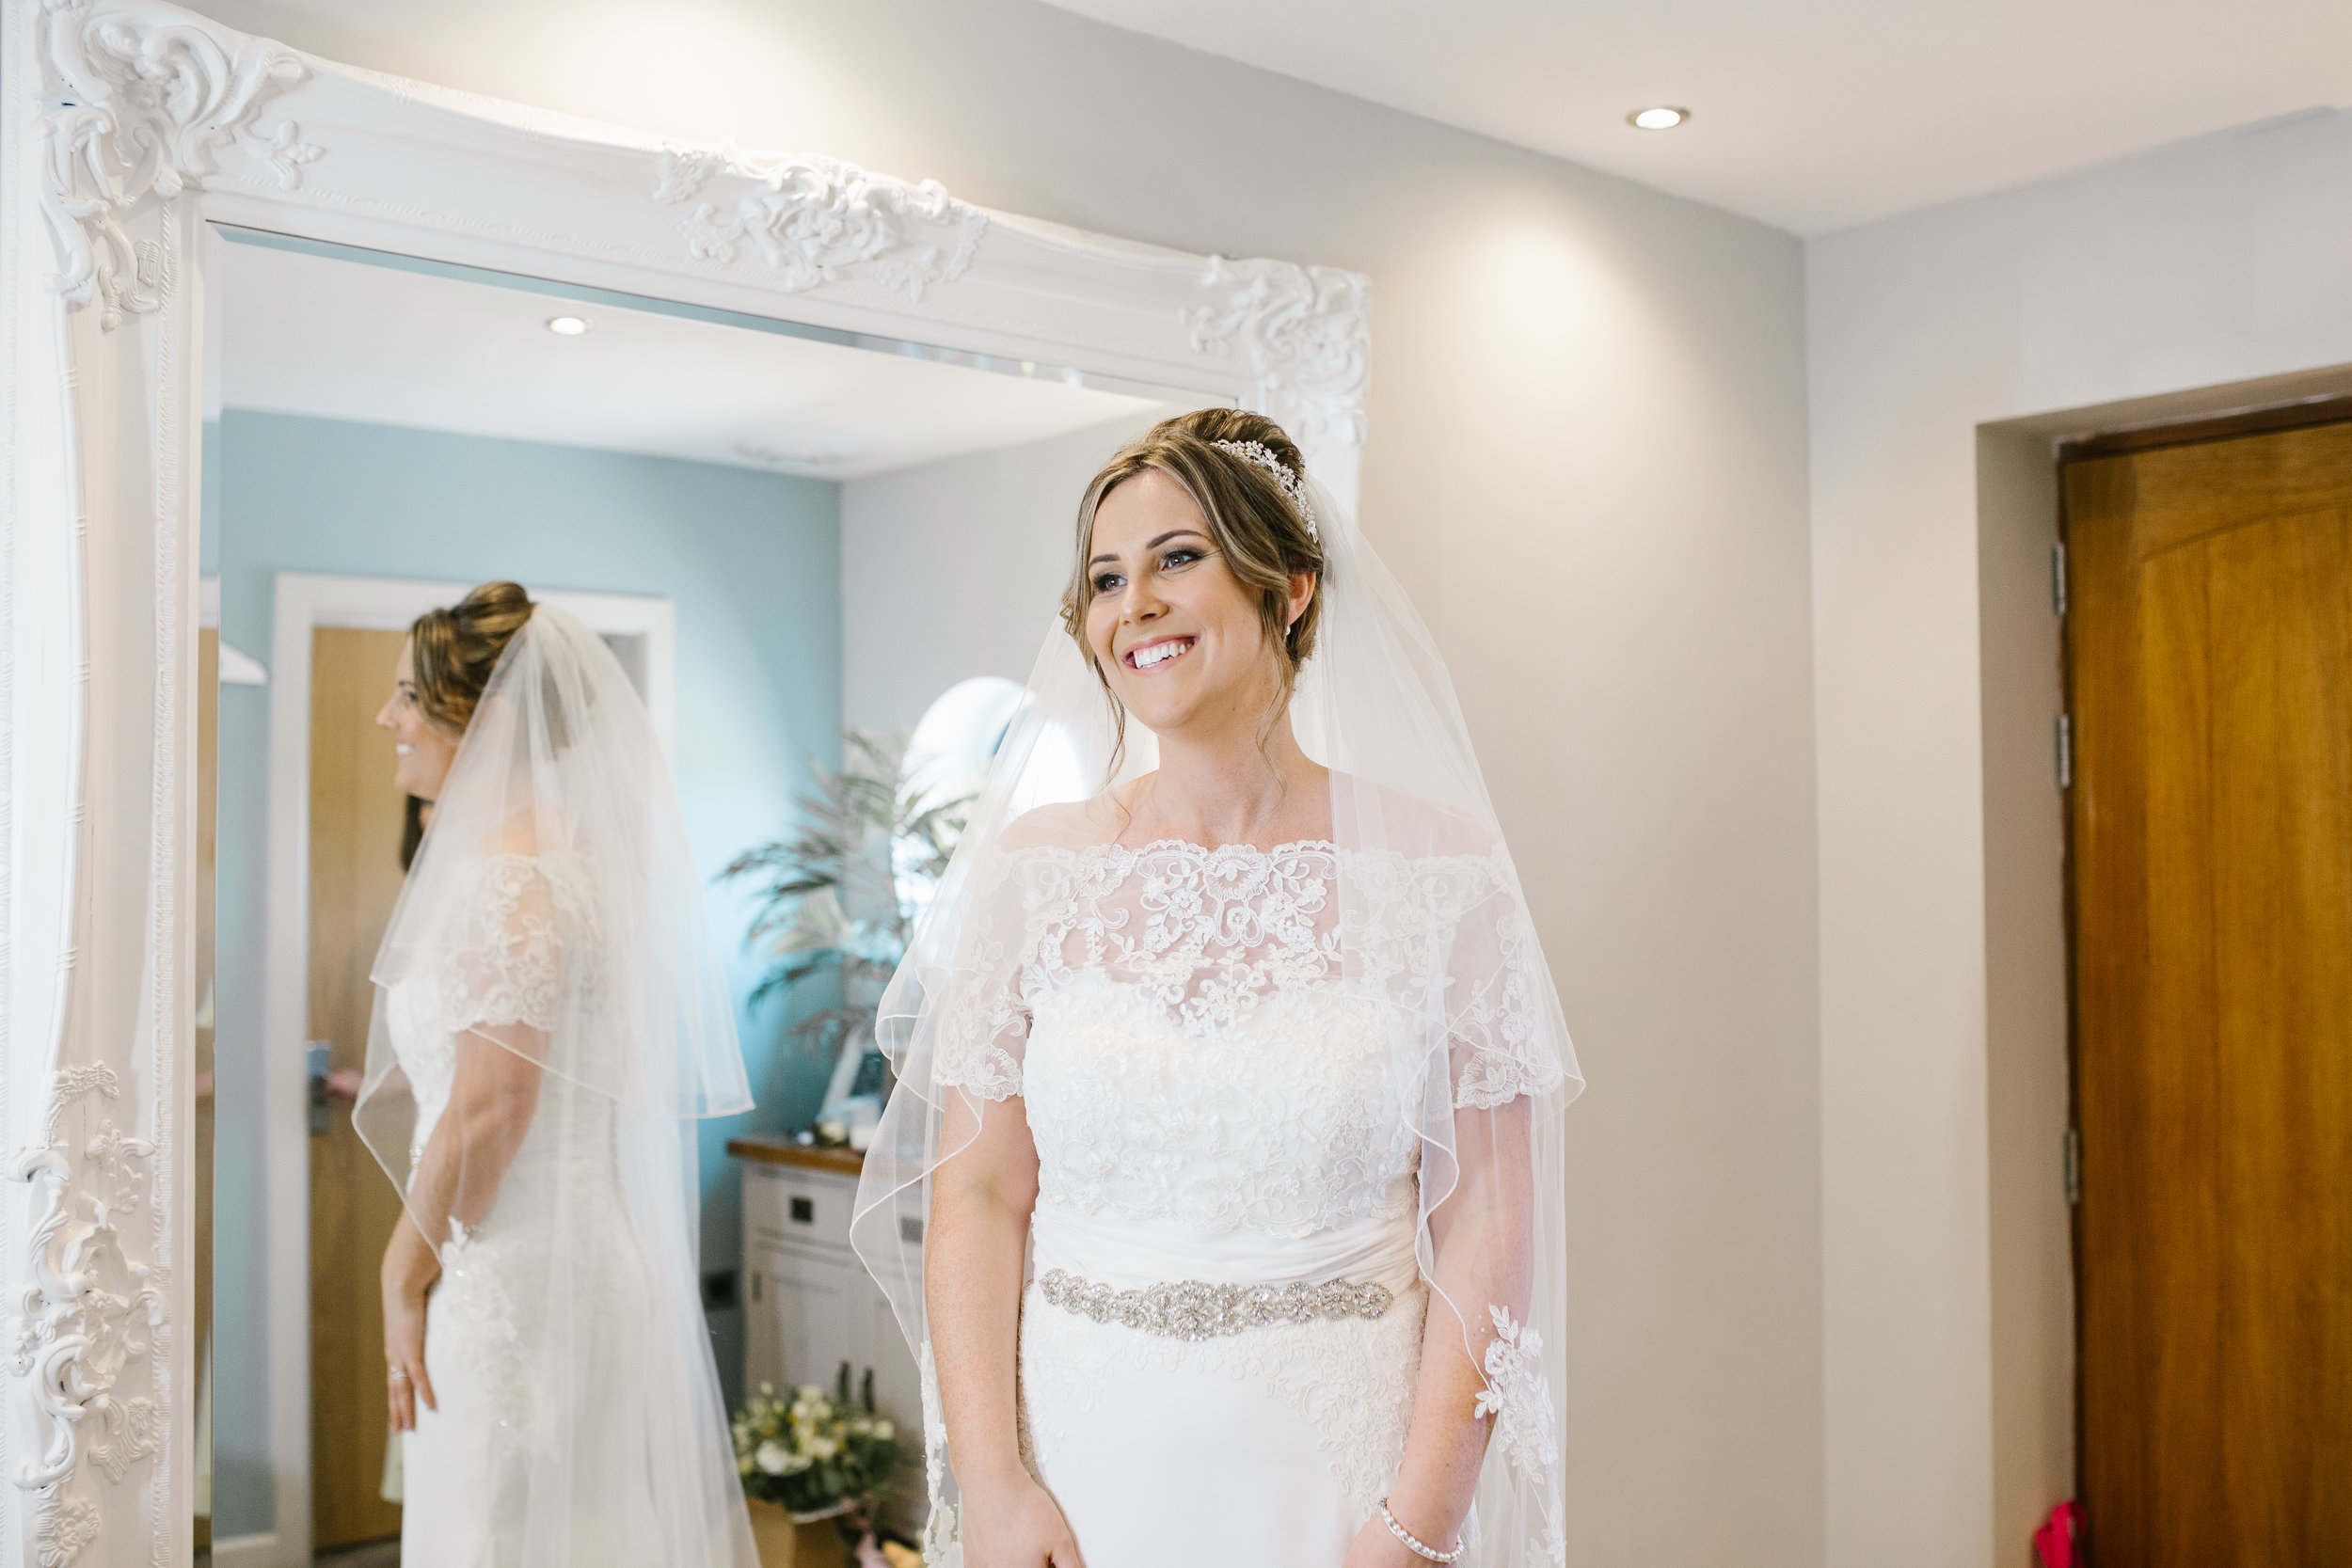 natural smiling photo of bride in her wedding dress just before she leaves to marry her groom